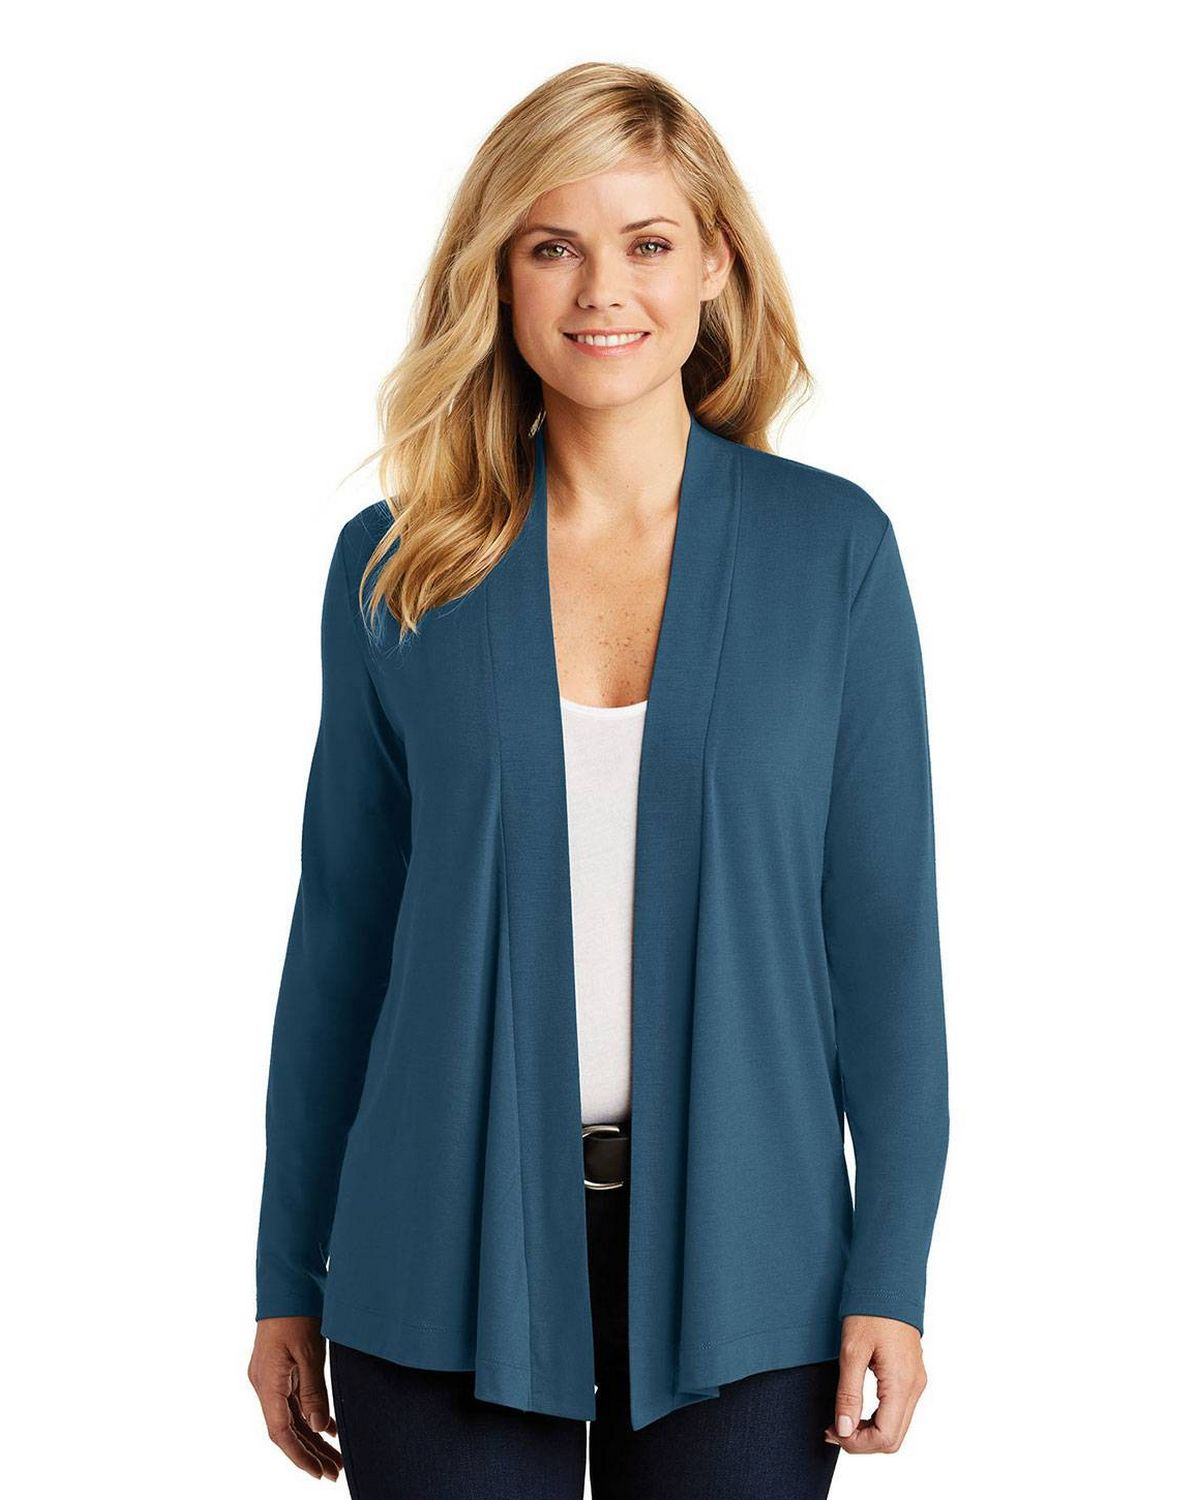 Port Authority L5430 Ladies Concept Knit Cardigan